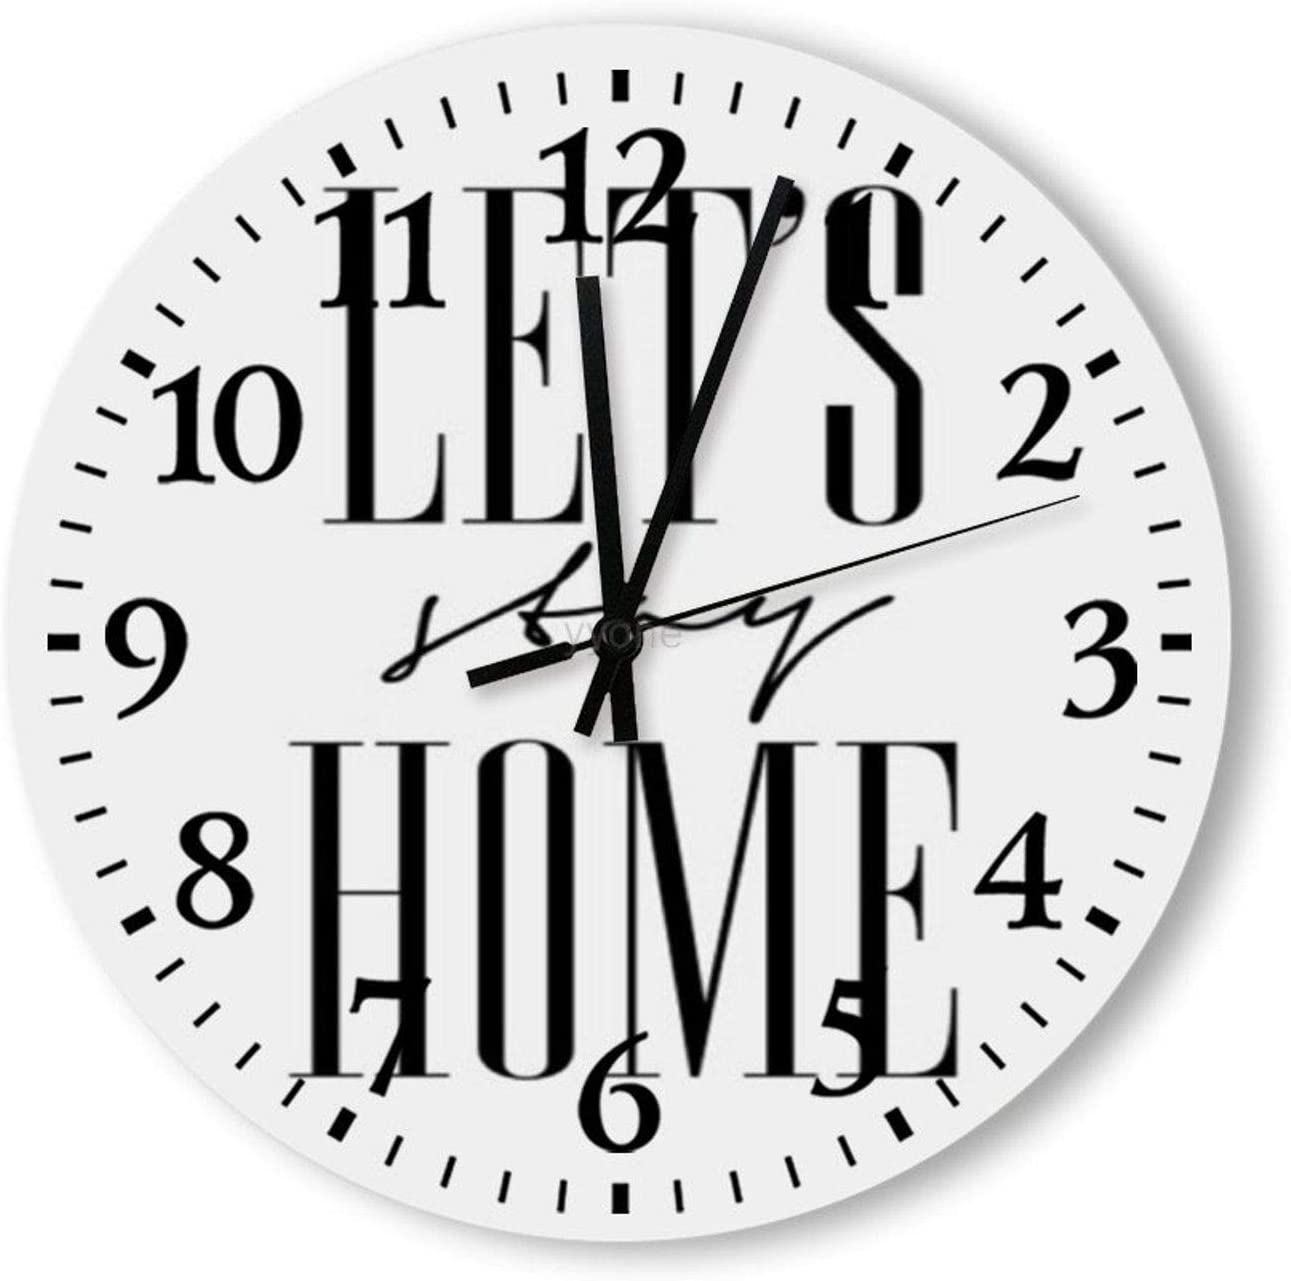 yyone Wooden Wall Clock - Let's Stay Home Print Decorative Round Wooden Wall Clock 12 Inch for Room, Office, Kitchen Home Decor